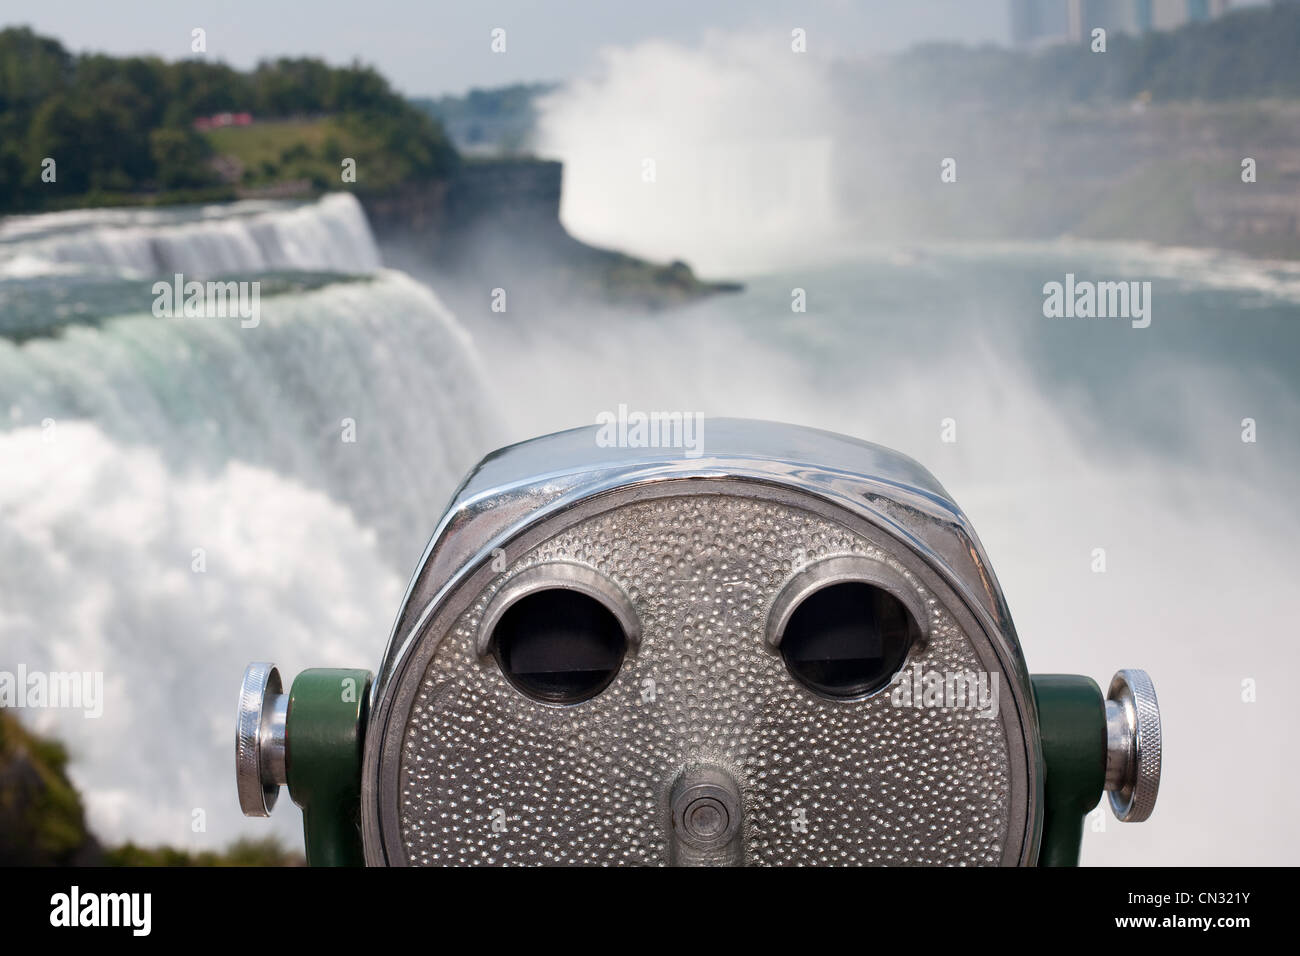 Coin operated binoculars, Niagara Falls, New York, USA - Stock Image